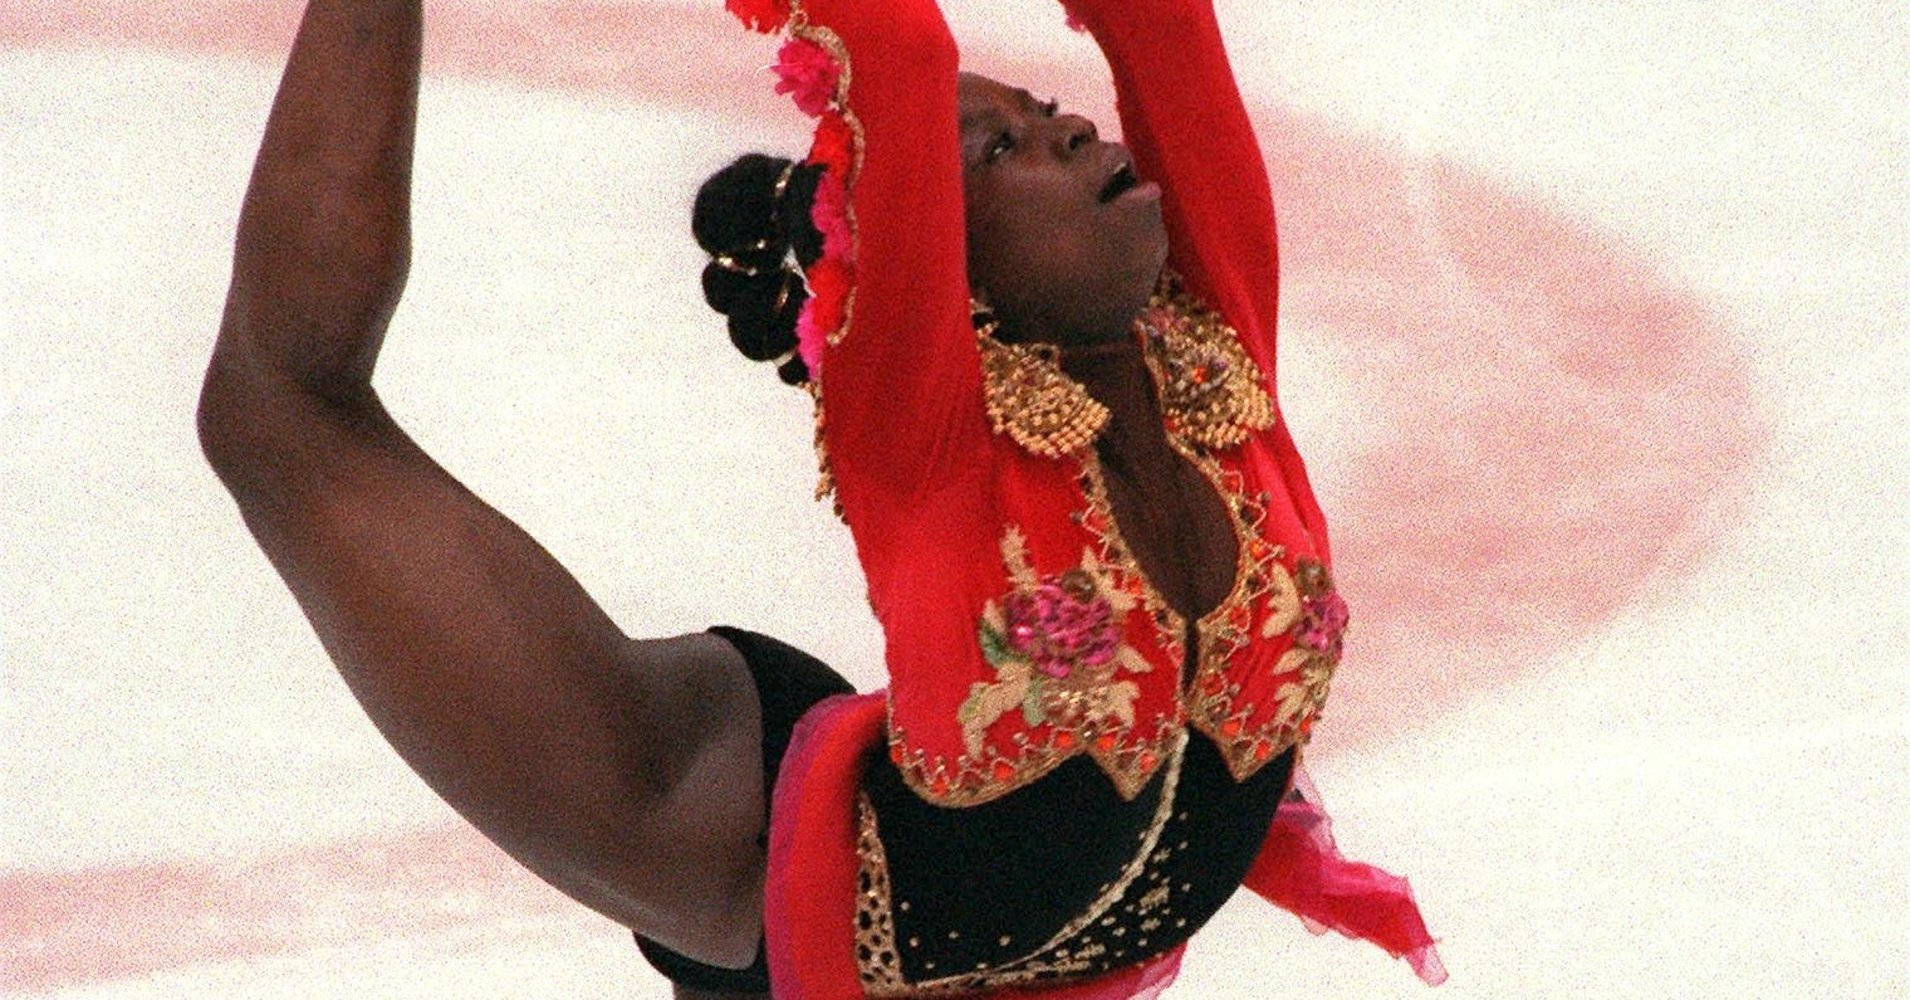 Stunning Photos Show The Evolution Of Women's Figure Skating Costumes